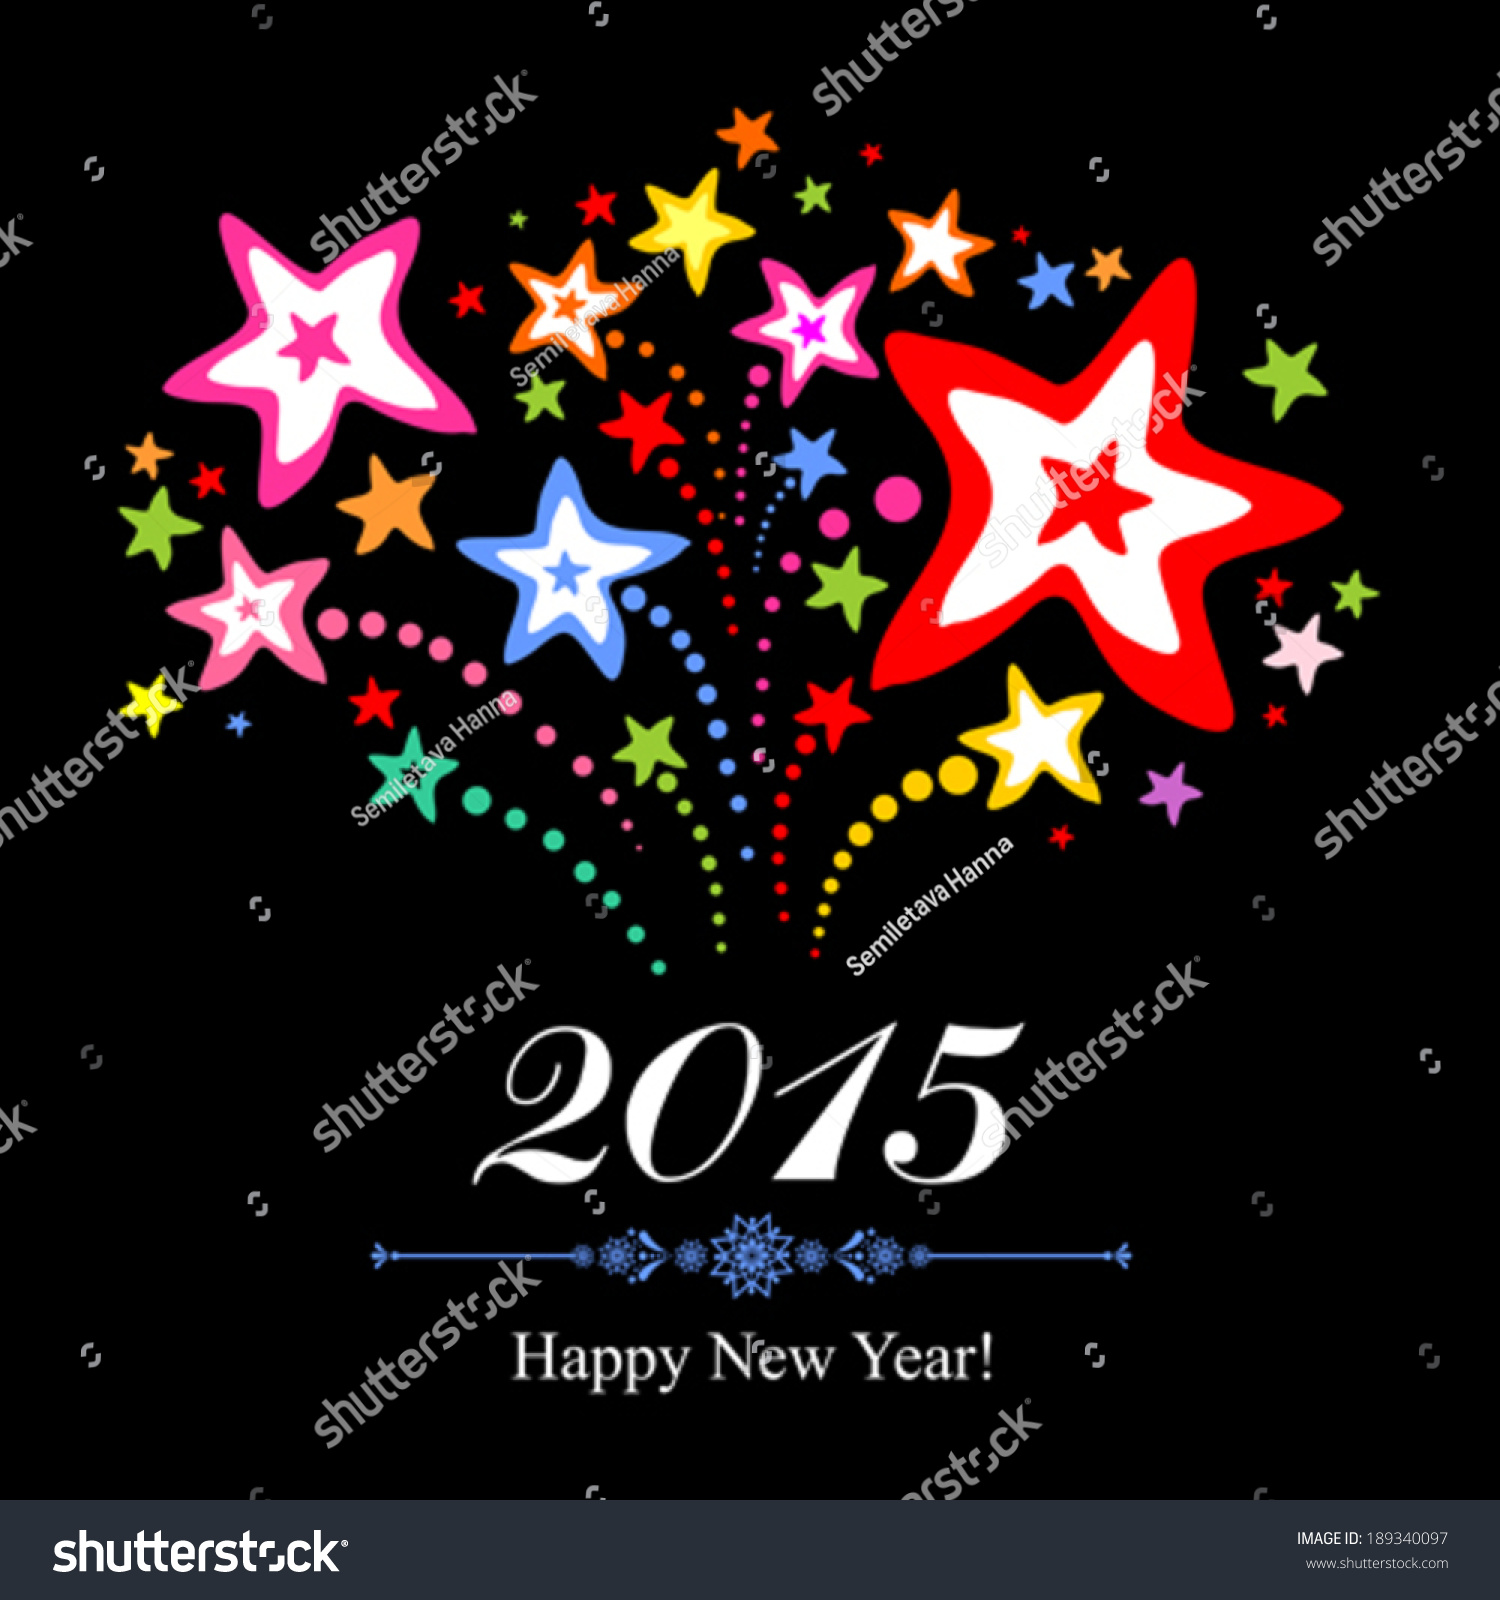 2015 Happy New Year Greeting Card Stock Vector 189340097 Shutterstock